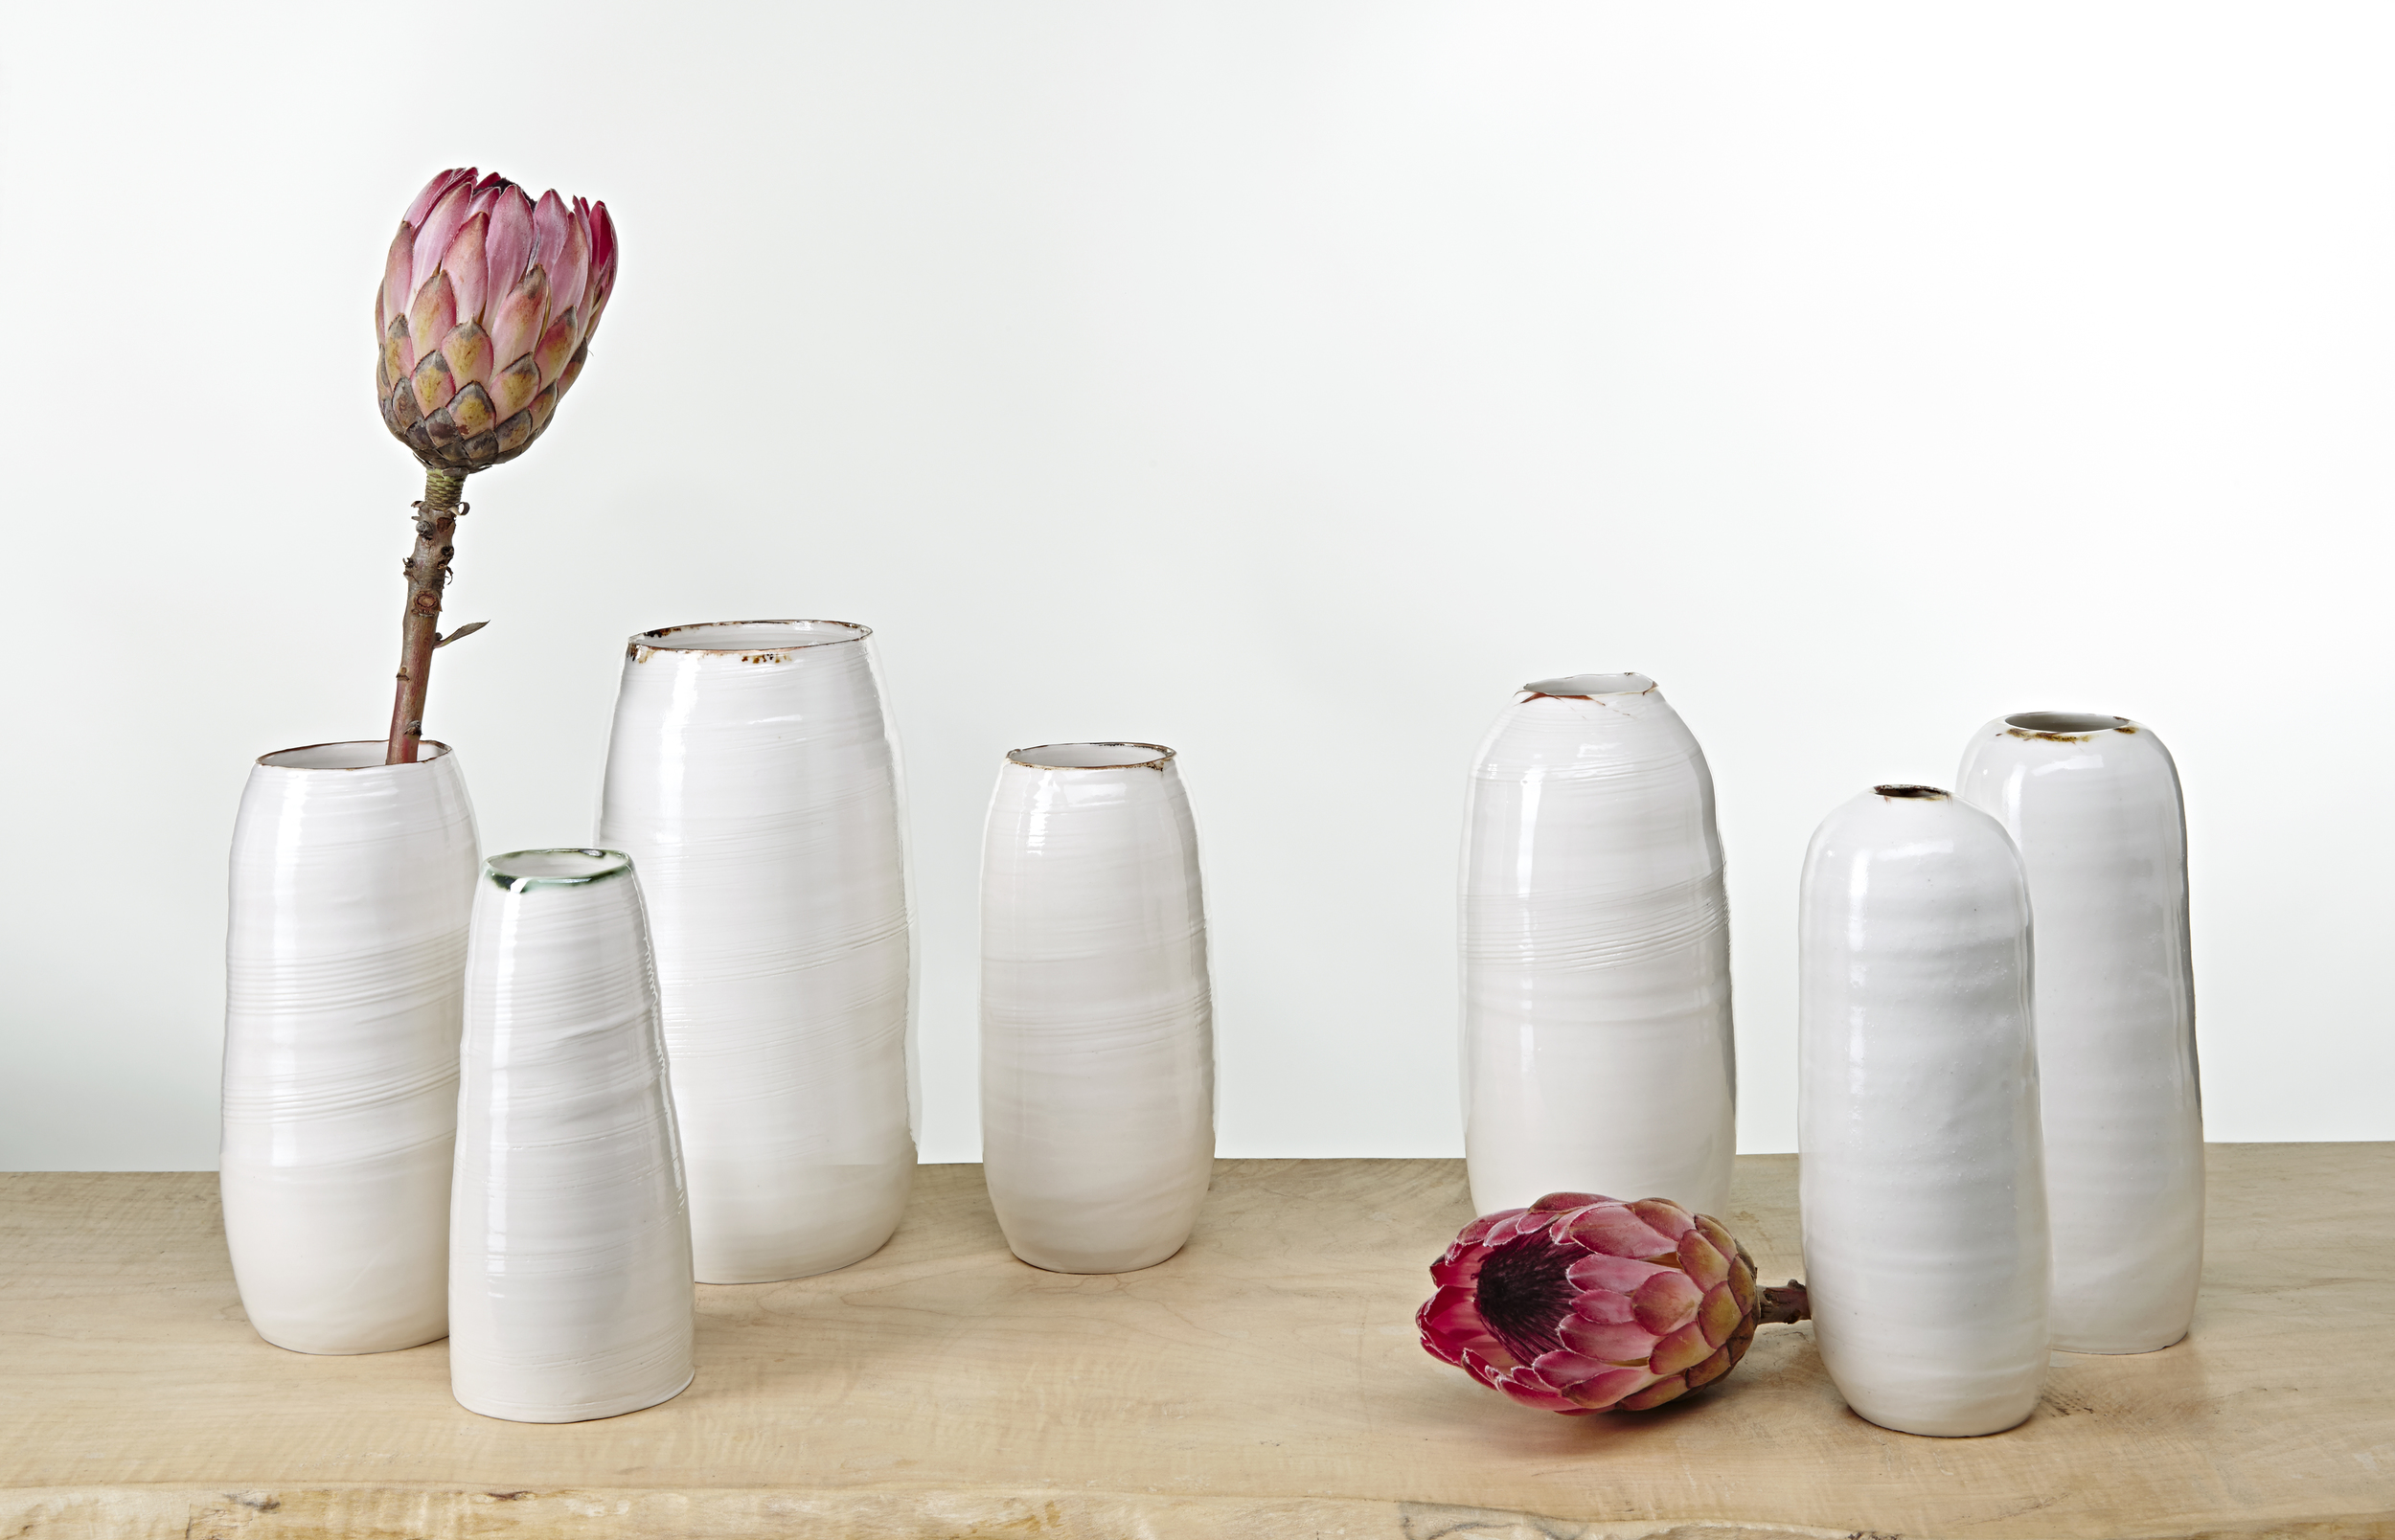 Bronze lustre vase collection KA Ceramics